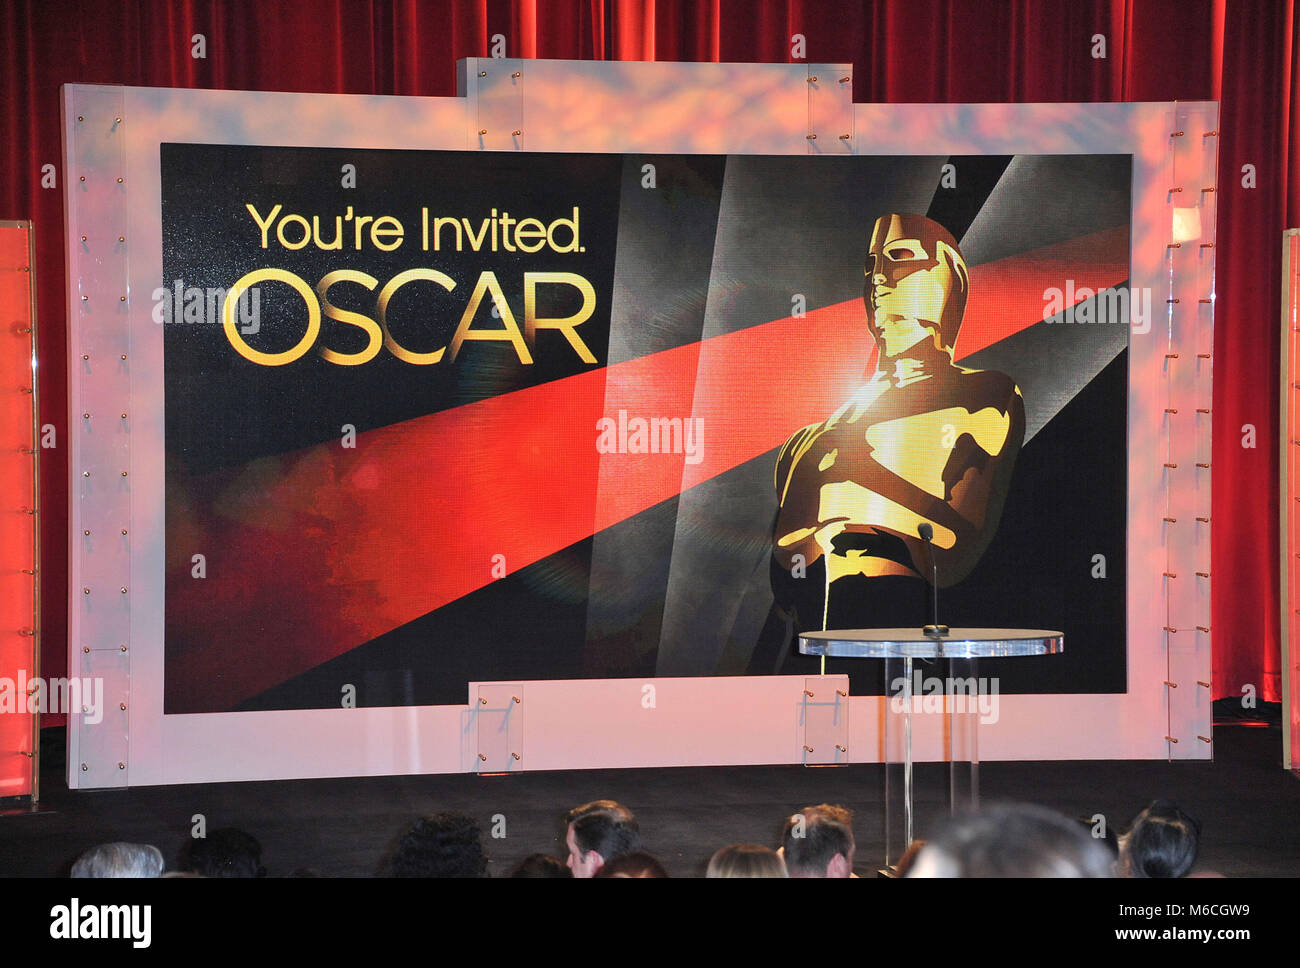 Oscars Nominations 2011 at the Academy Of Motion Pictures and Science in Los Angeles. Monique - Stock Image